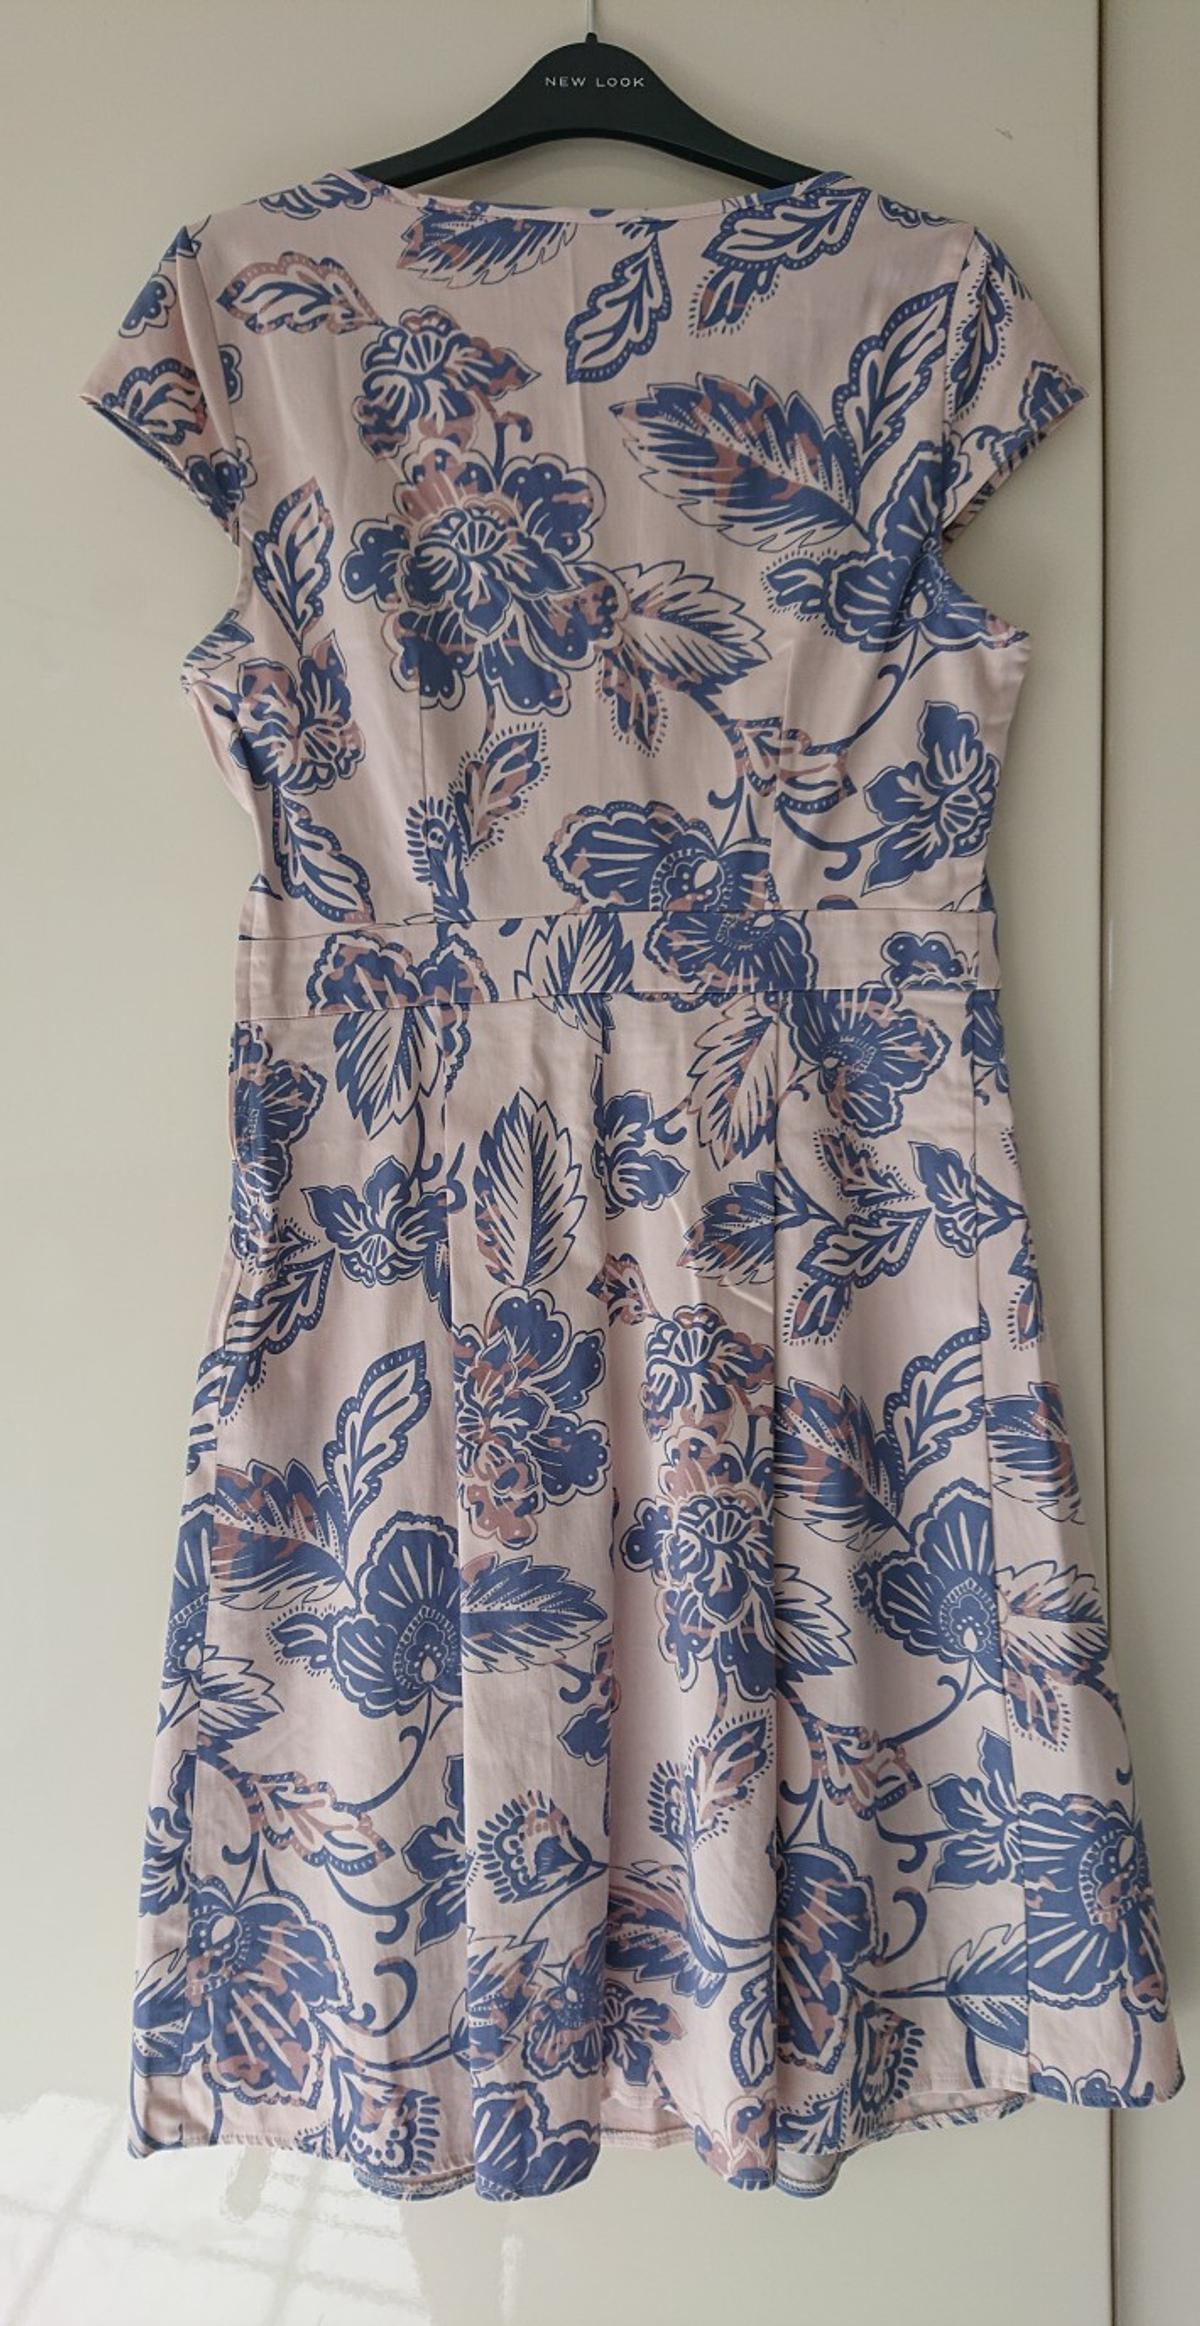 """Lovely dress in excellent condition Shoulder to hem measures approx 38"""" Cream blue & light beige Underarm to underarm 36"""" approx Please take a look at my other items 😊 Thank you for looking Cheryl ☺️"""